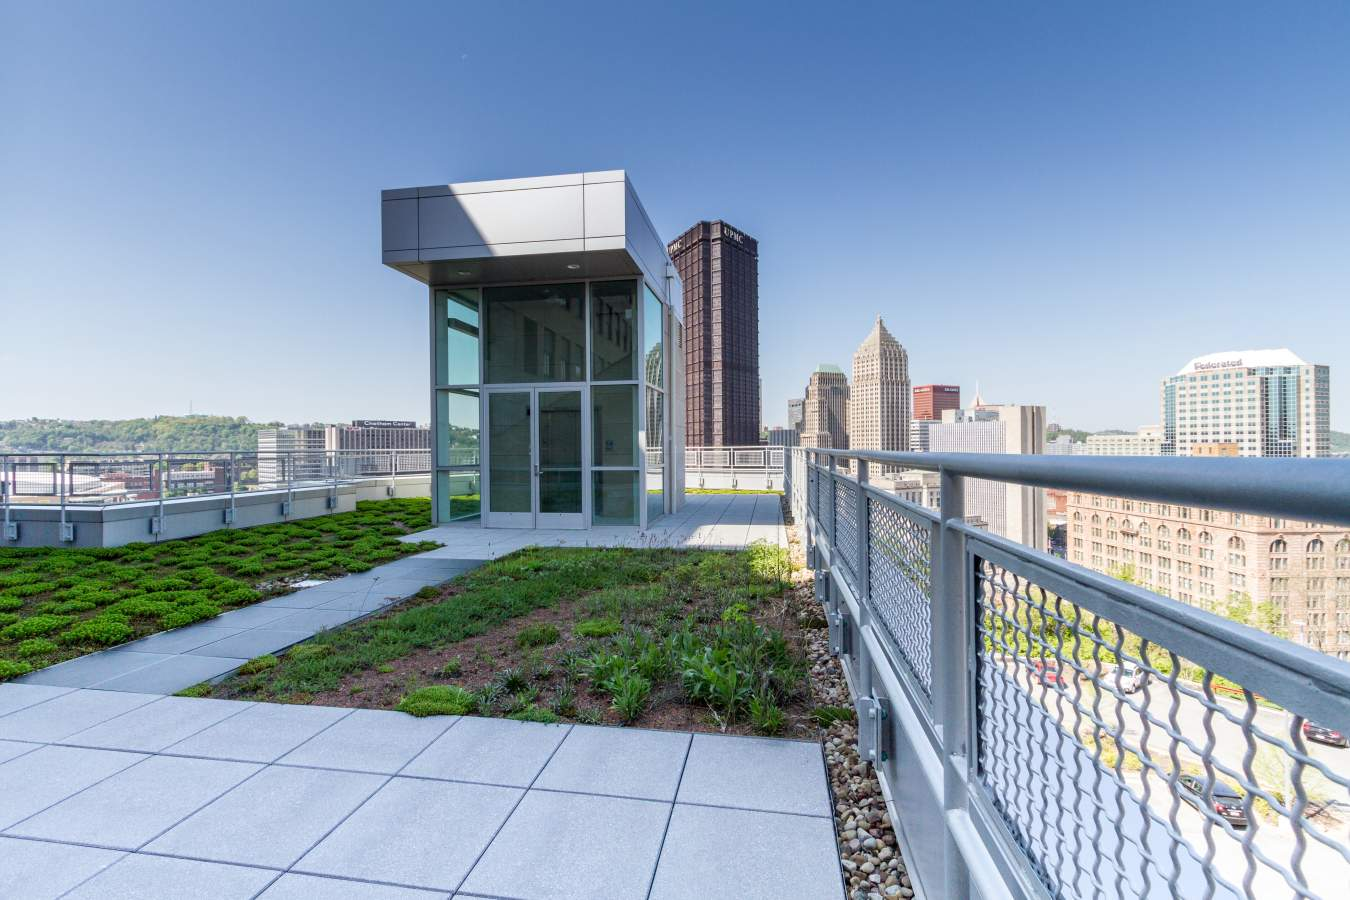 Energy Innovation Center EIC Rooftop Pittsburgh Wedding Venue  Jessica Garda Events.jpg